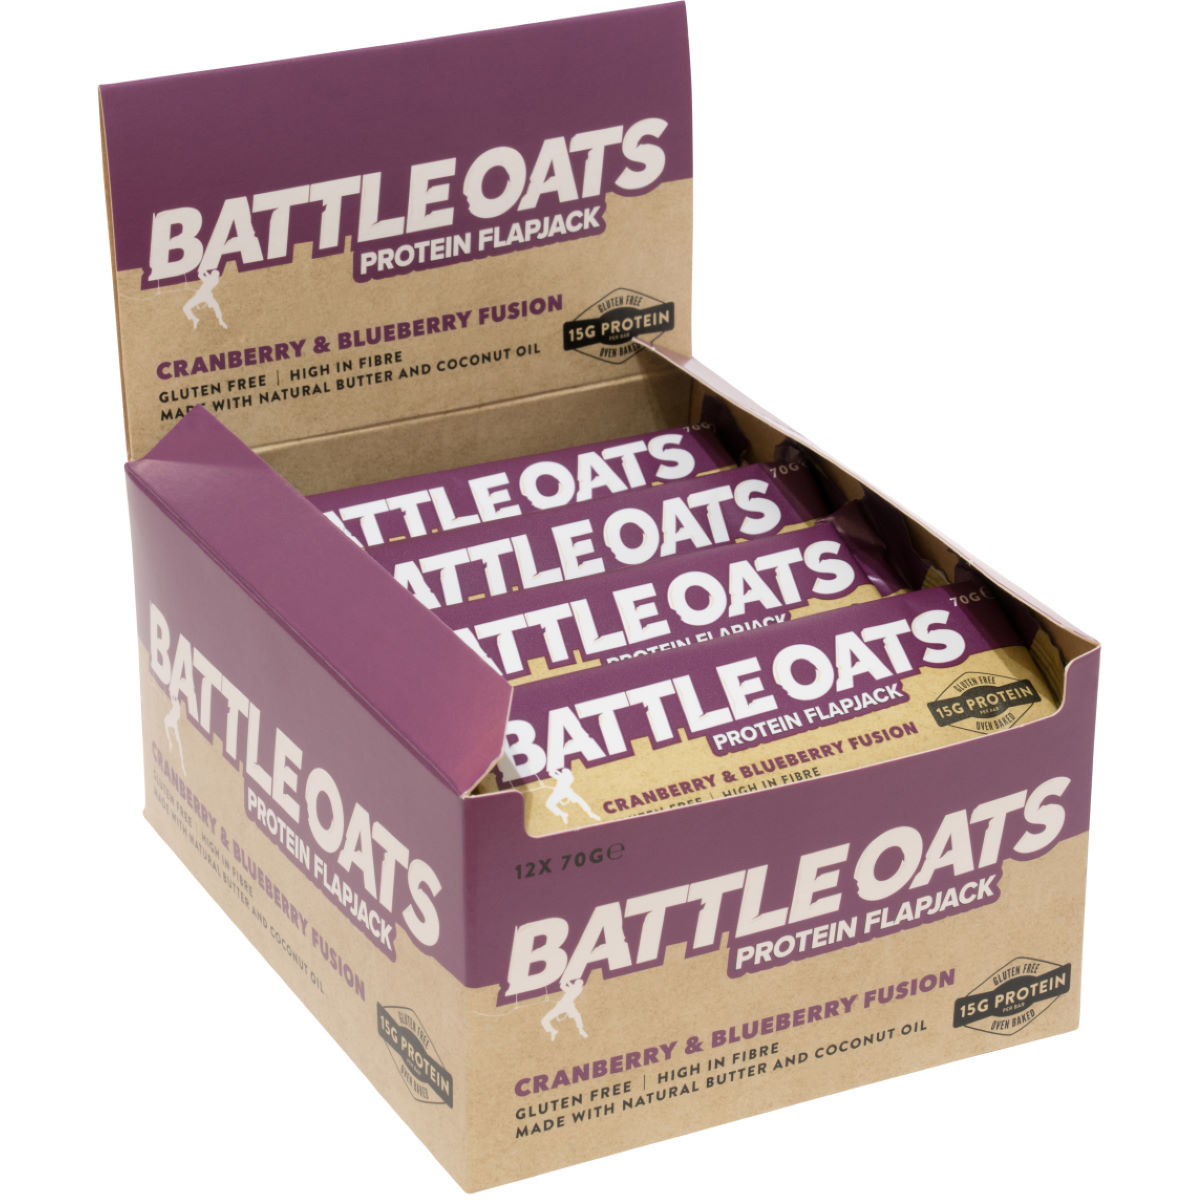 Image of Barres Flapjacks Battle Oats (12 x 70 g) - 12 x 70g | Barres